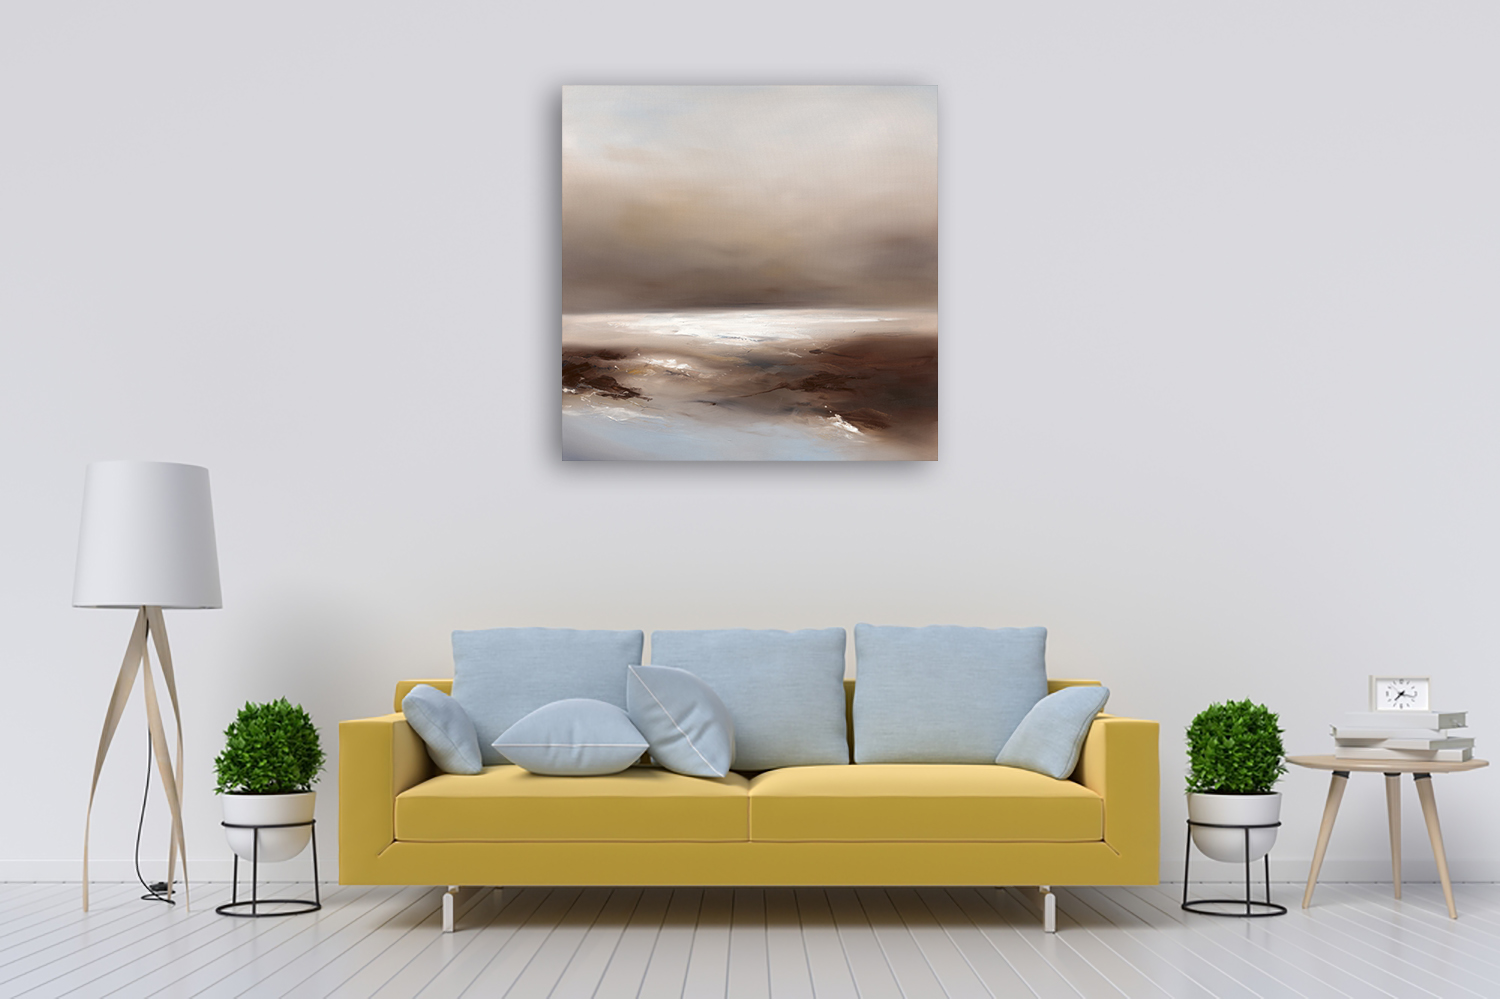 Nature Square Wall Art on Canvas